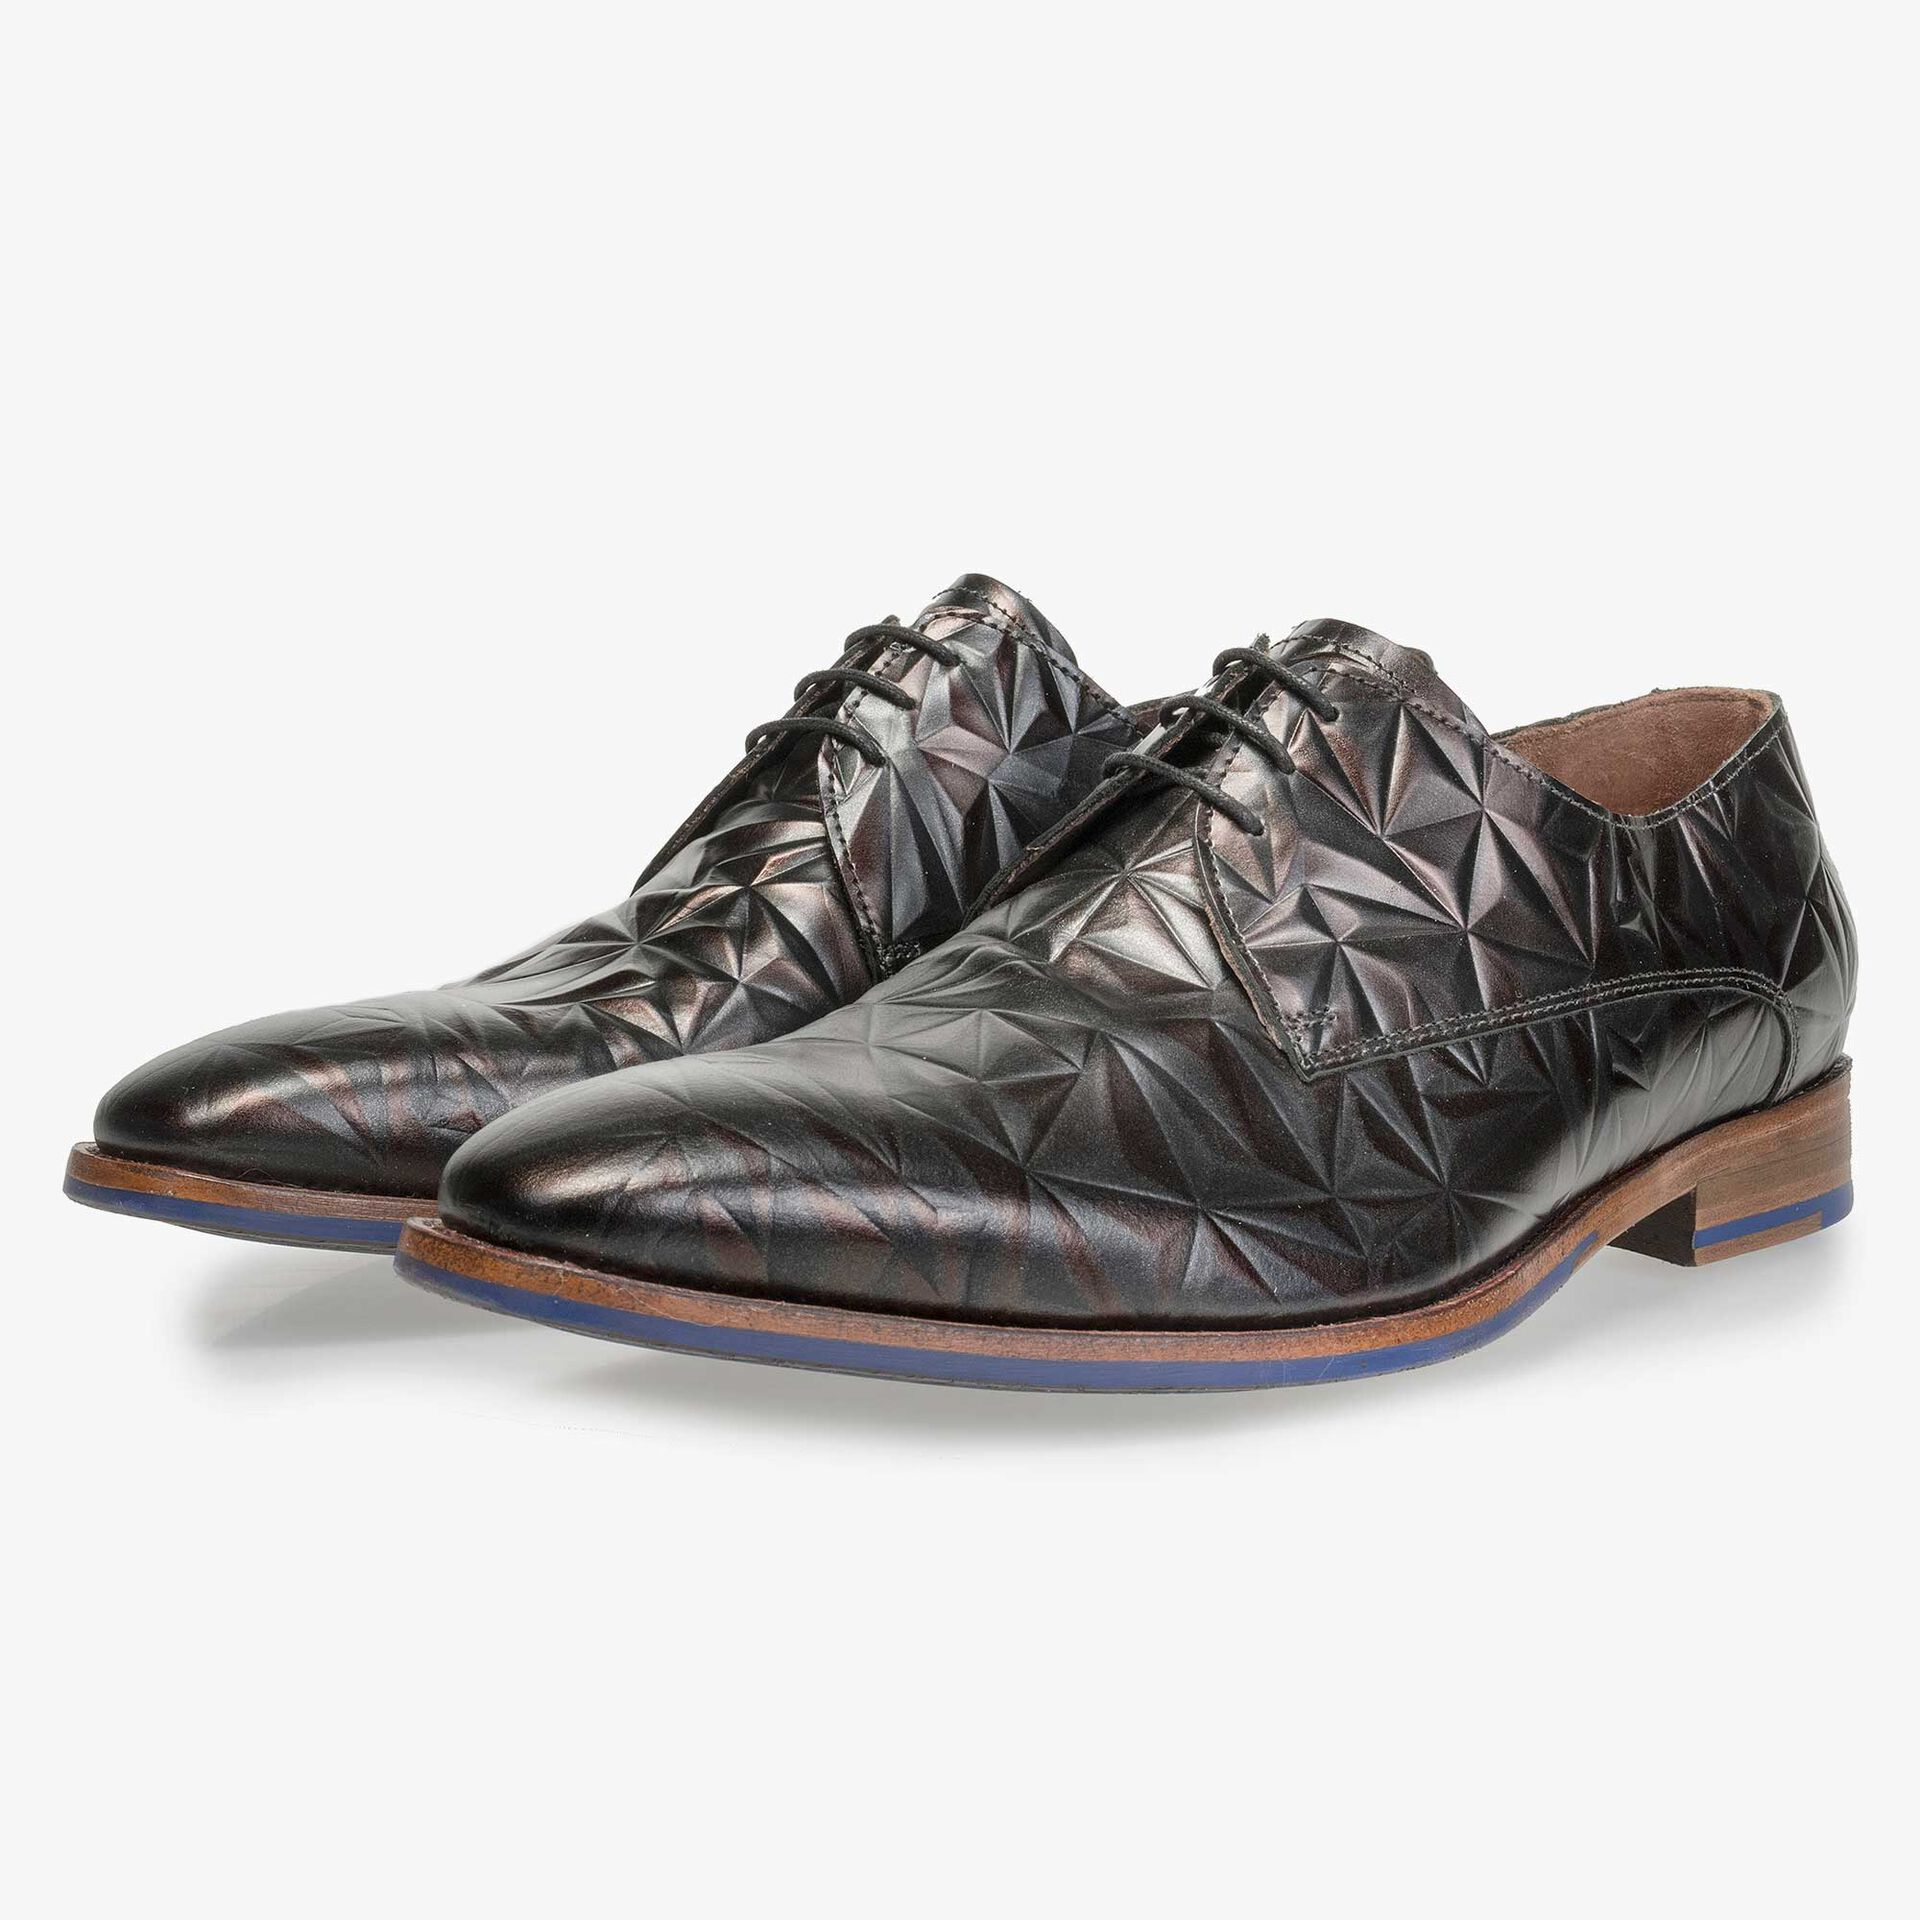 Floris van Bommel men's dark brown leather lace shoe finished with a black 3D print